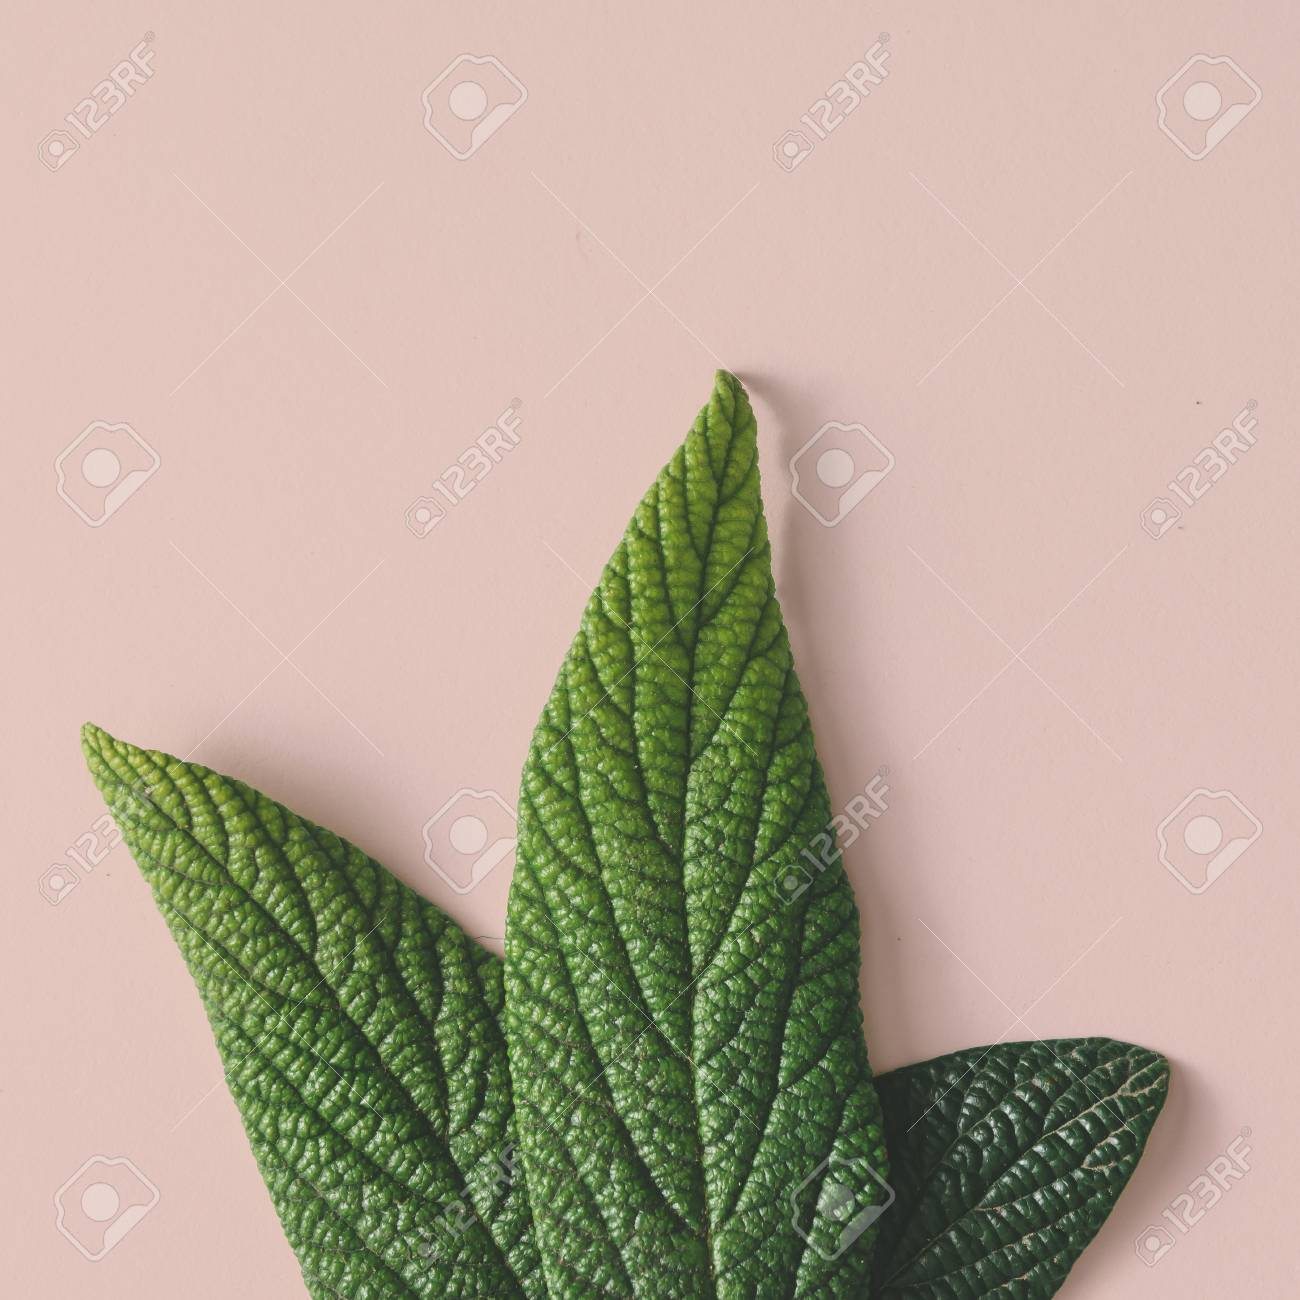 Creative minimal arrangement of leaves on bright white background. Flat lay. Nature concept. - 74236859